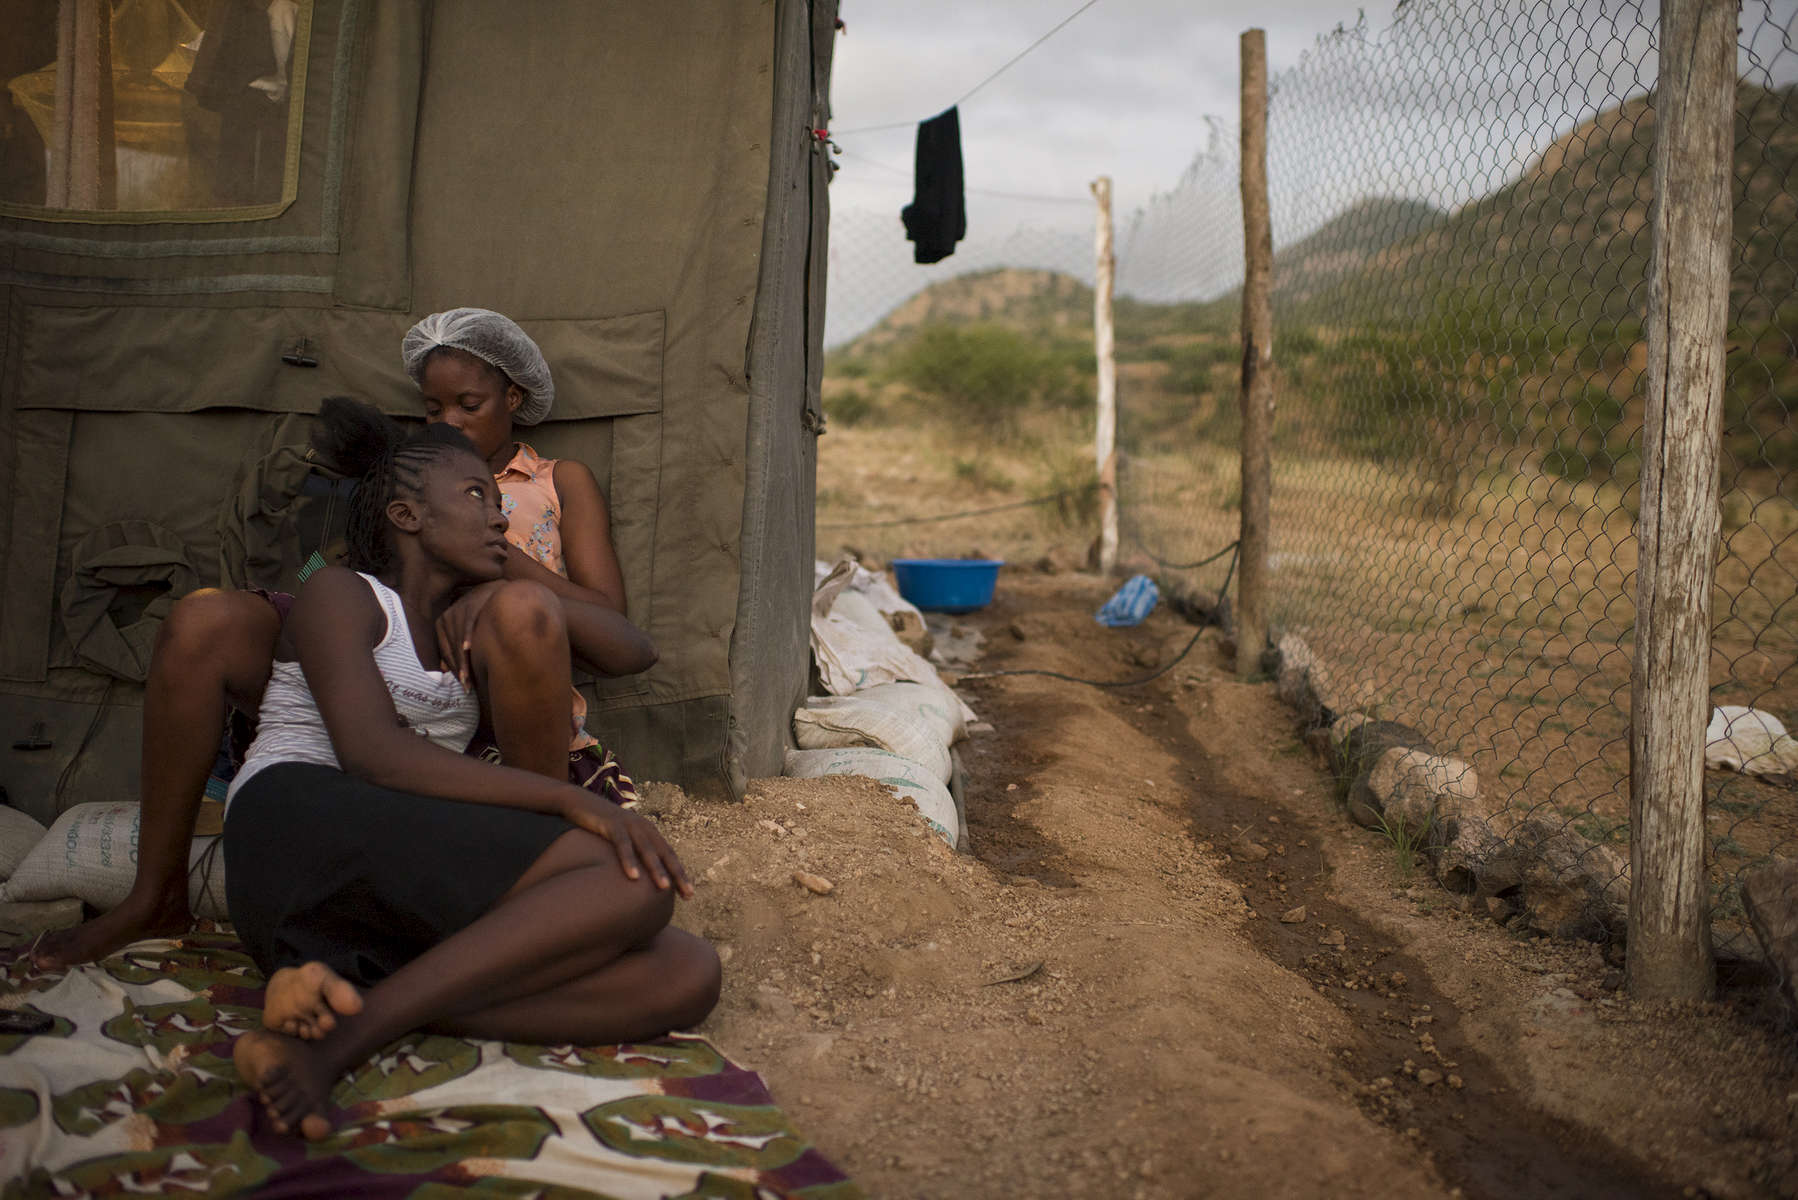 May 4, 2018: KANENGUERERE, ANGOLA -  HALO deminer Domingas Xavier does the hair of her colleague Rita Vambi in front of their tent at the end of the work day.  These deminers are working under extremely difficult circumstances in Kanenguerere.  Not only is extremely hot - with snakes and scorpions common - but much of the mined area is on the side of an extremely steep hill, making every step dangerous.  As a result, afternoons are often spent making themselves look and feel fantastic. The area was mined during the civil war by government forces to protect the nearby railway line that can be seen in the background, as well as various troop positions. It is currently used by roughly 170 people including village residents and nomadic herders - many of whom are young children - who pass through uncleared land every day.